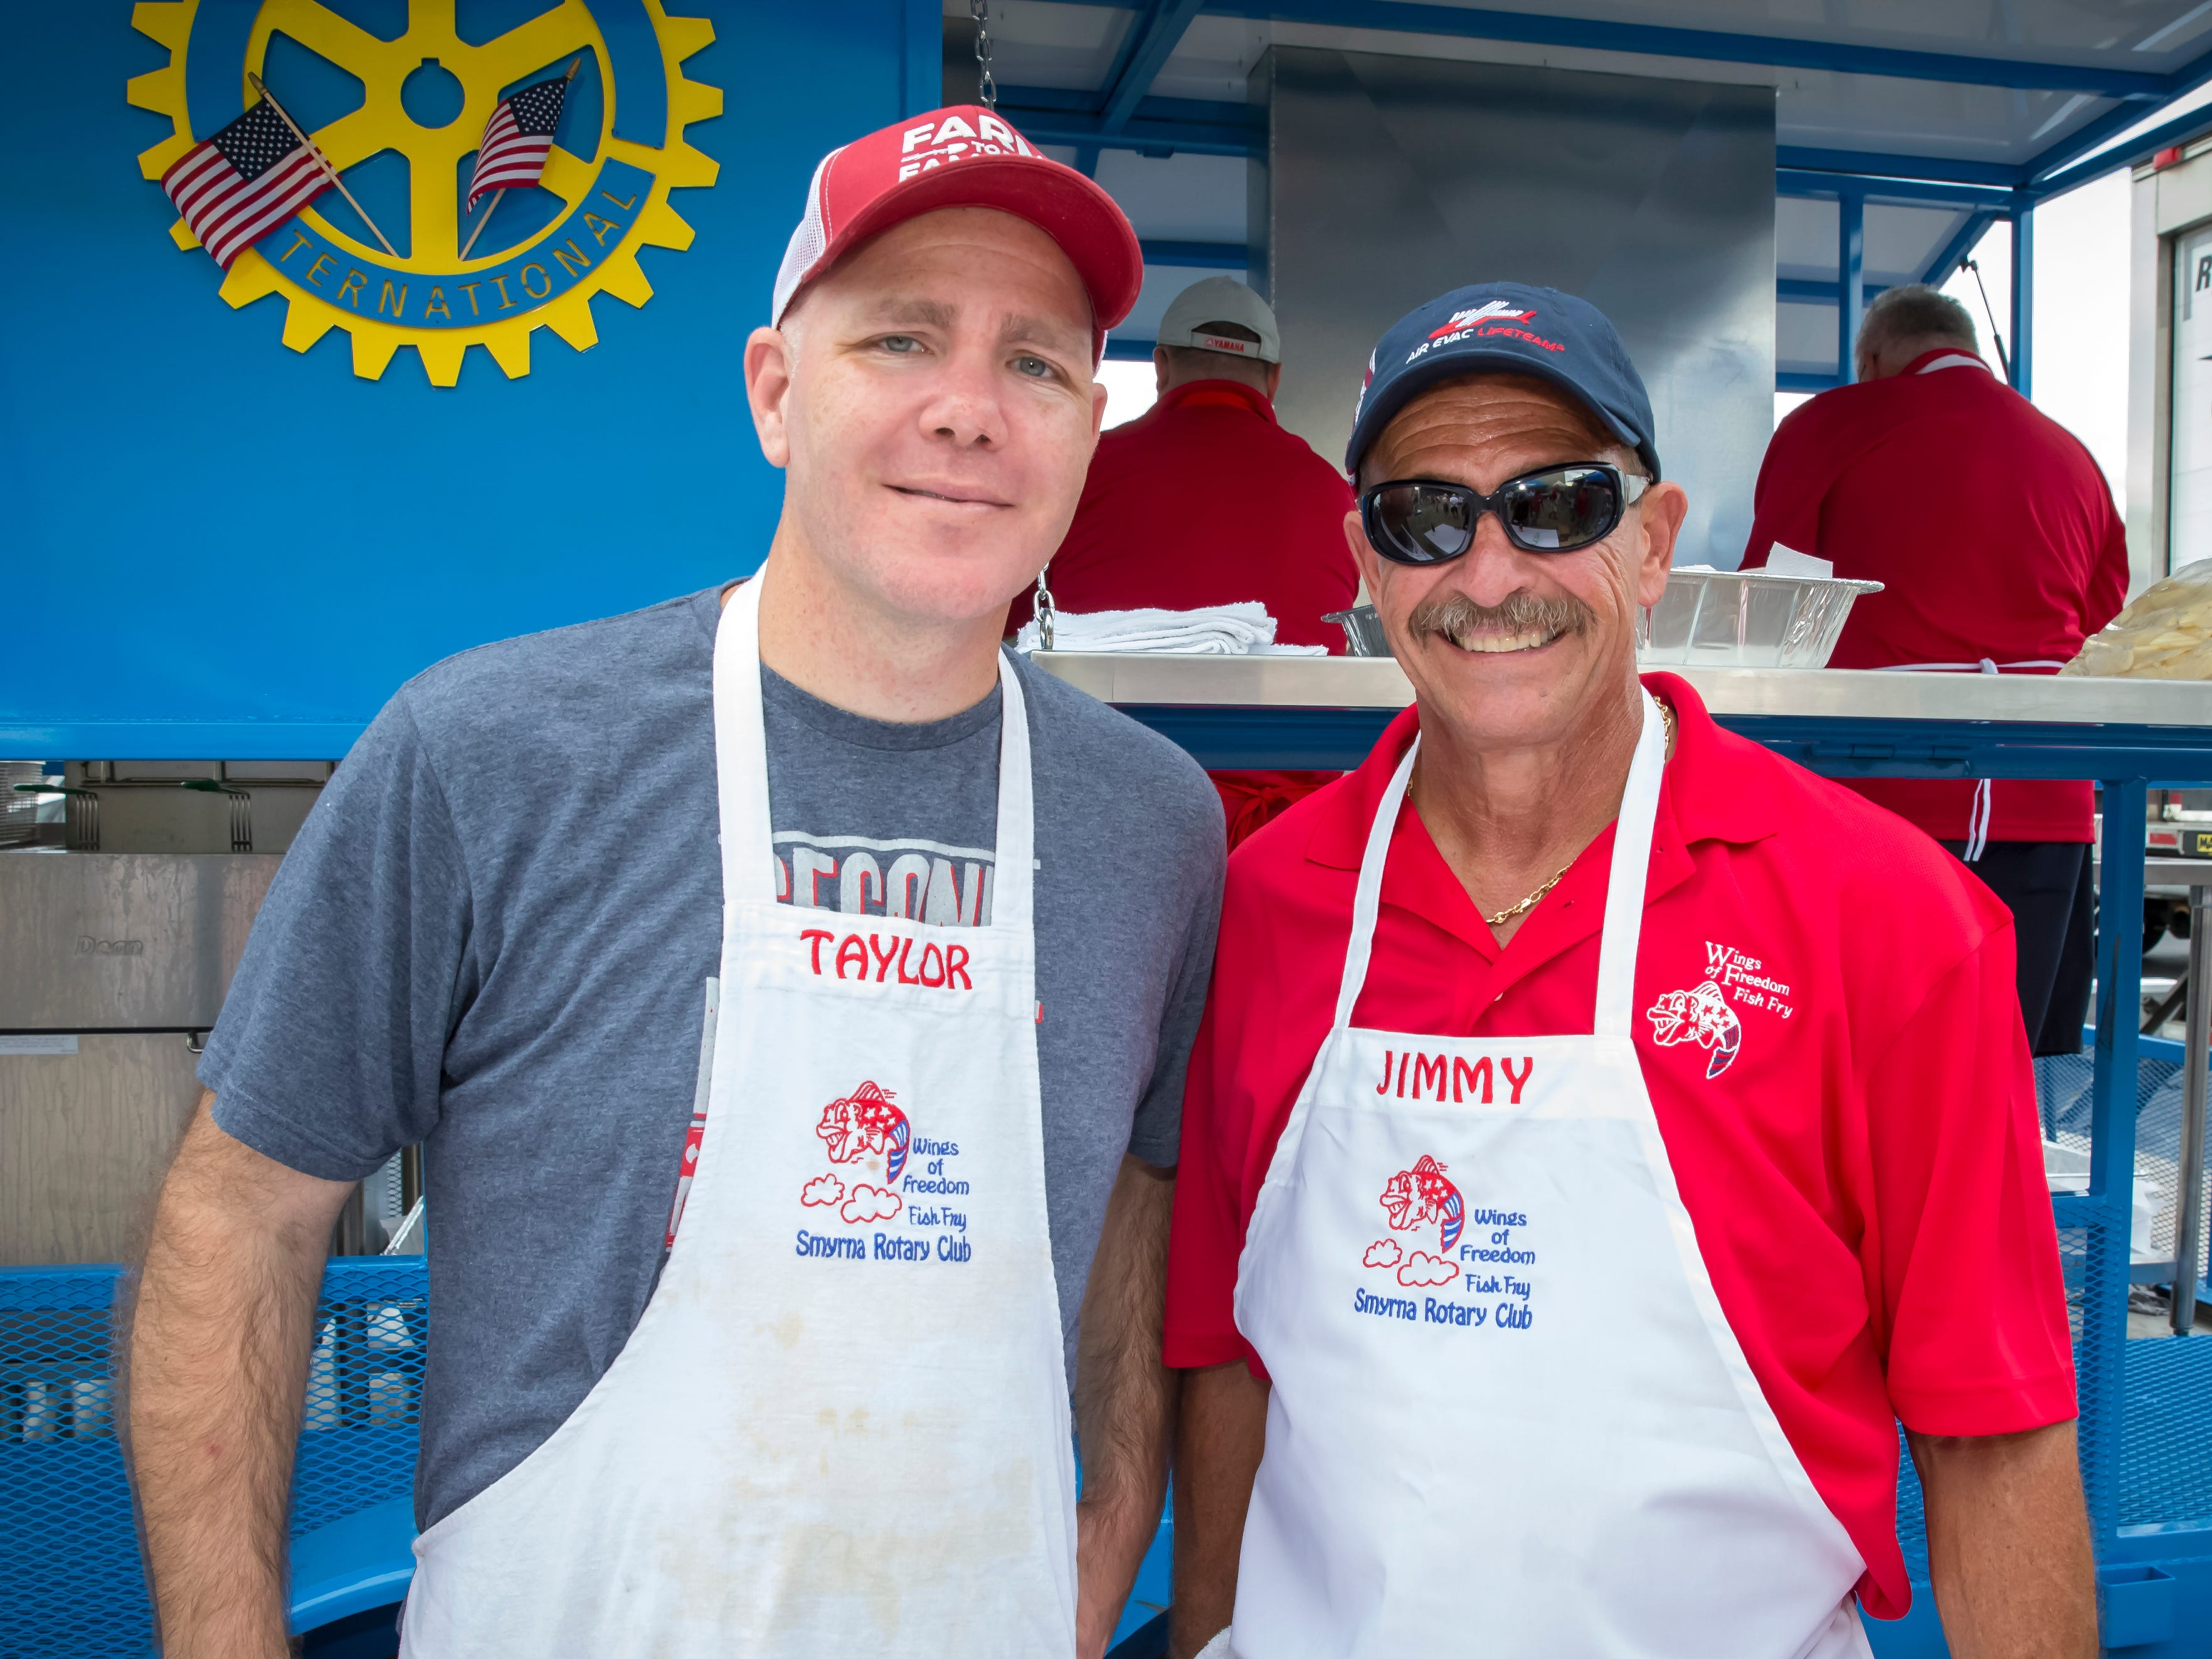 Taylor Loyal and Jimmy Driver at the Wings of Freedom Fish Fry hosted by Smyrna Rotary Club. The event was held at the Corporate Flight Management Hangar at Smyrna Airport.